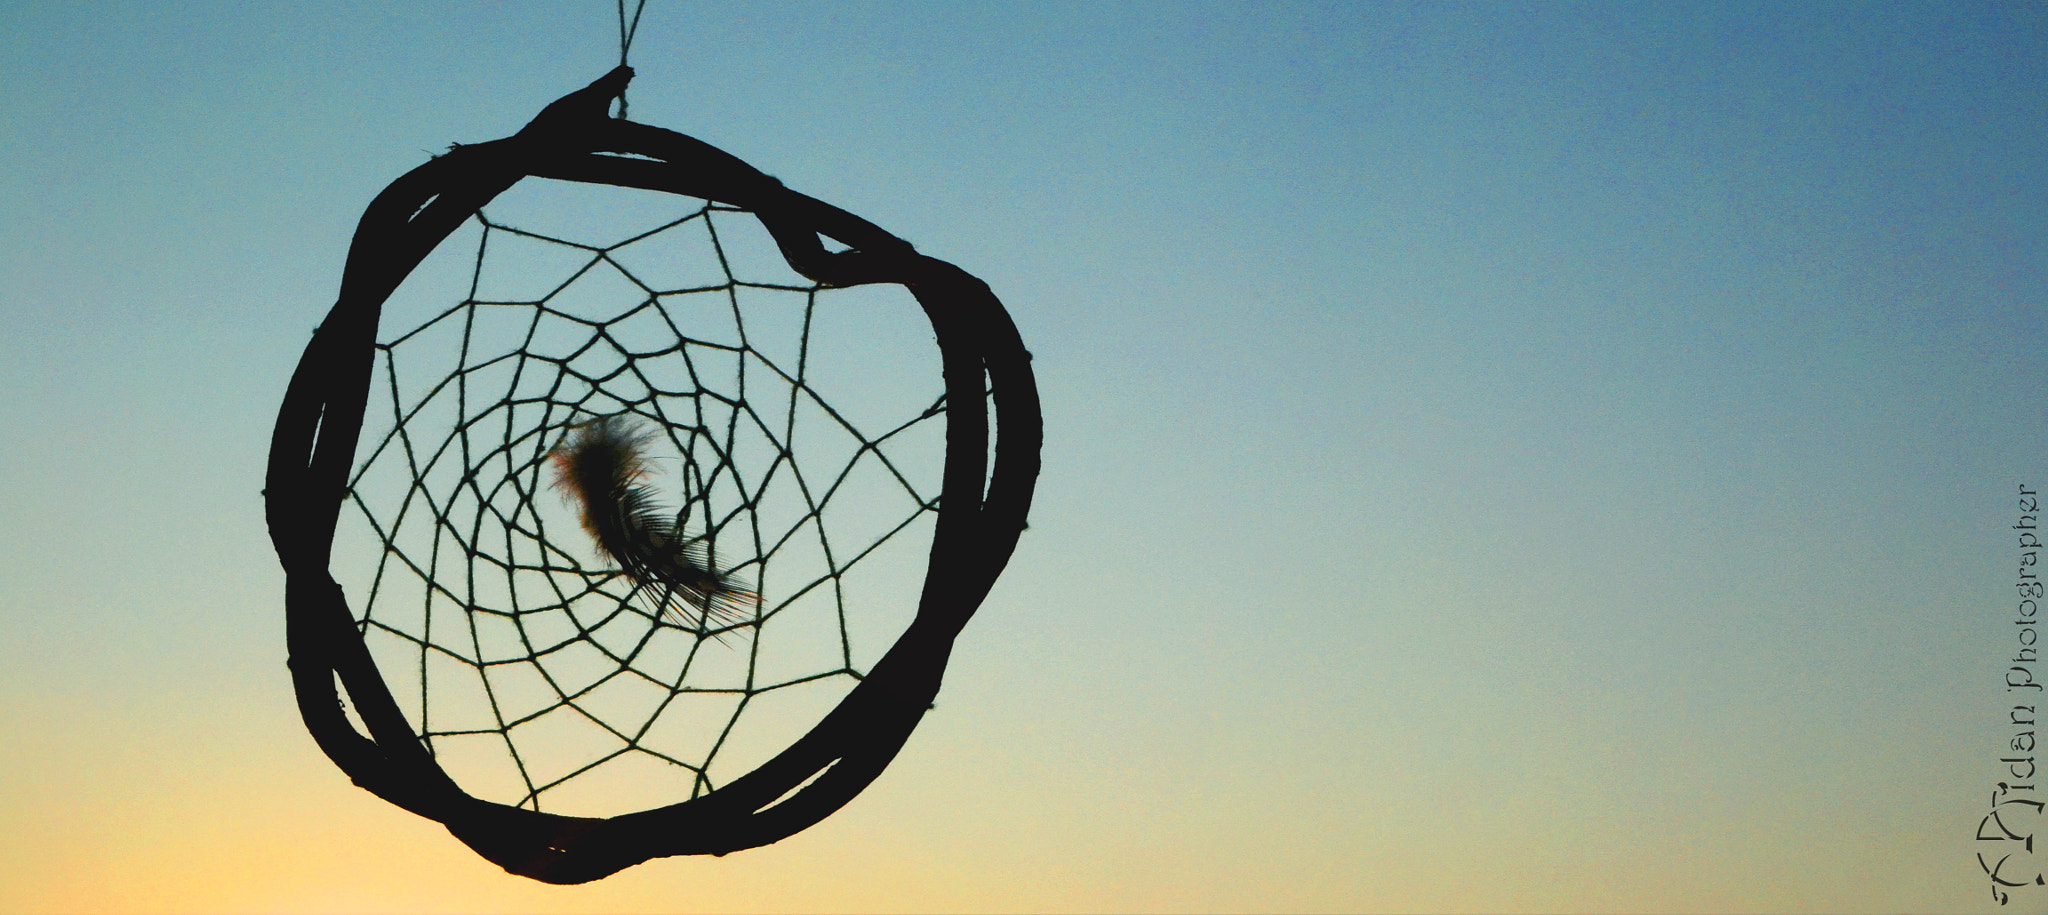 Photograph Dreamcatcher by Aidan S. on 500px